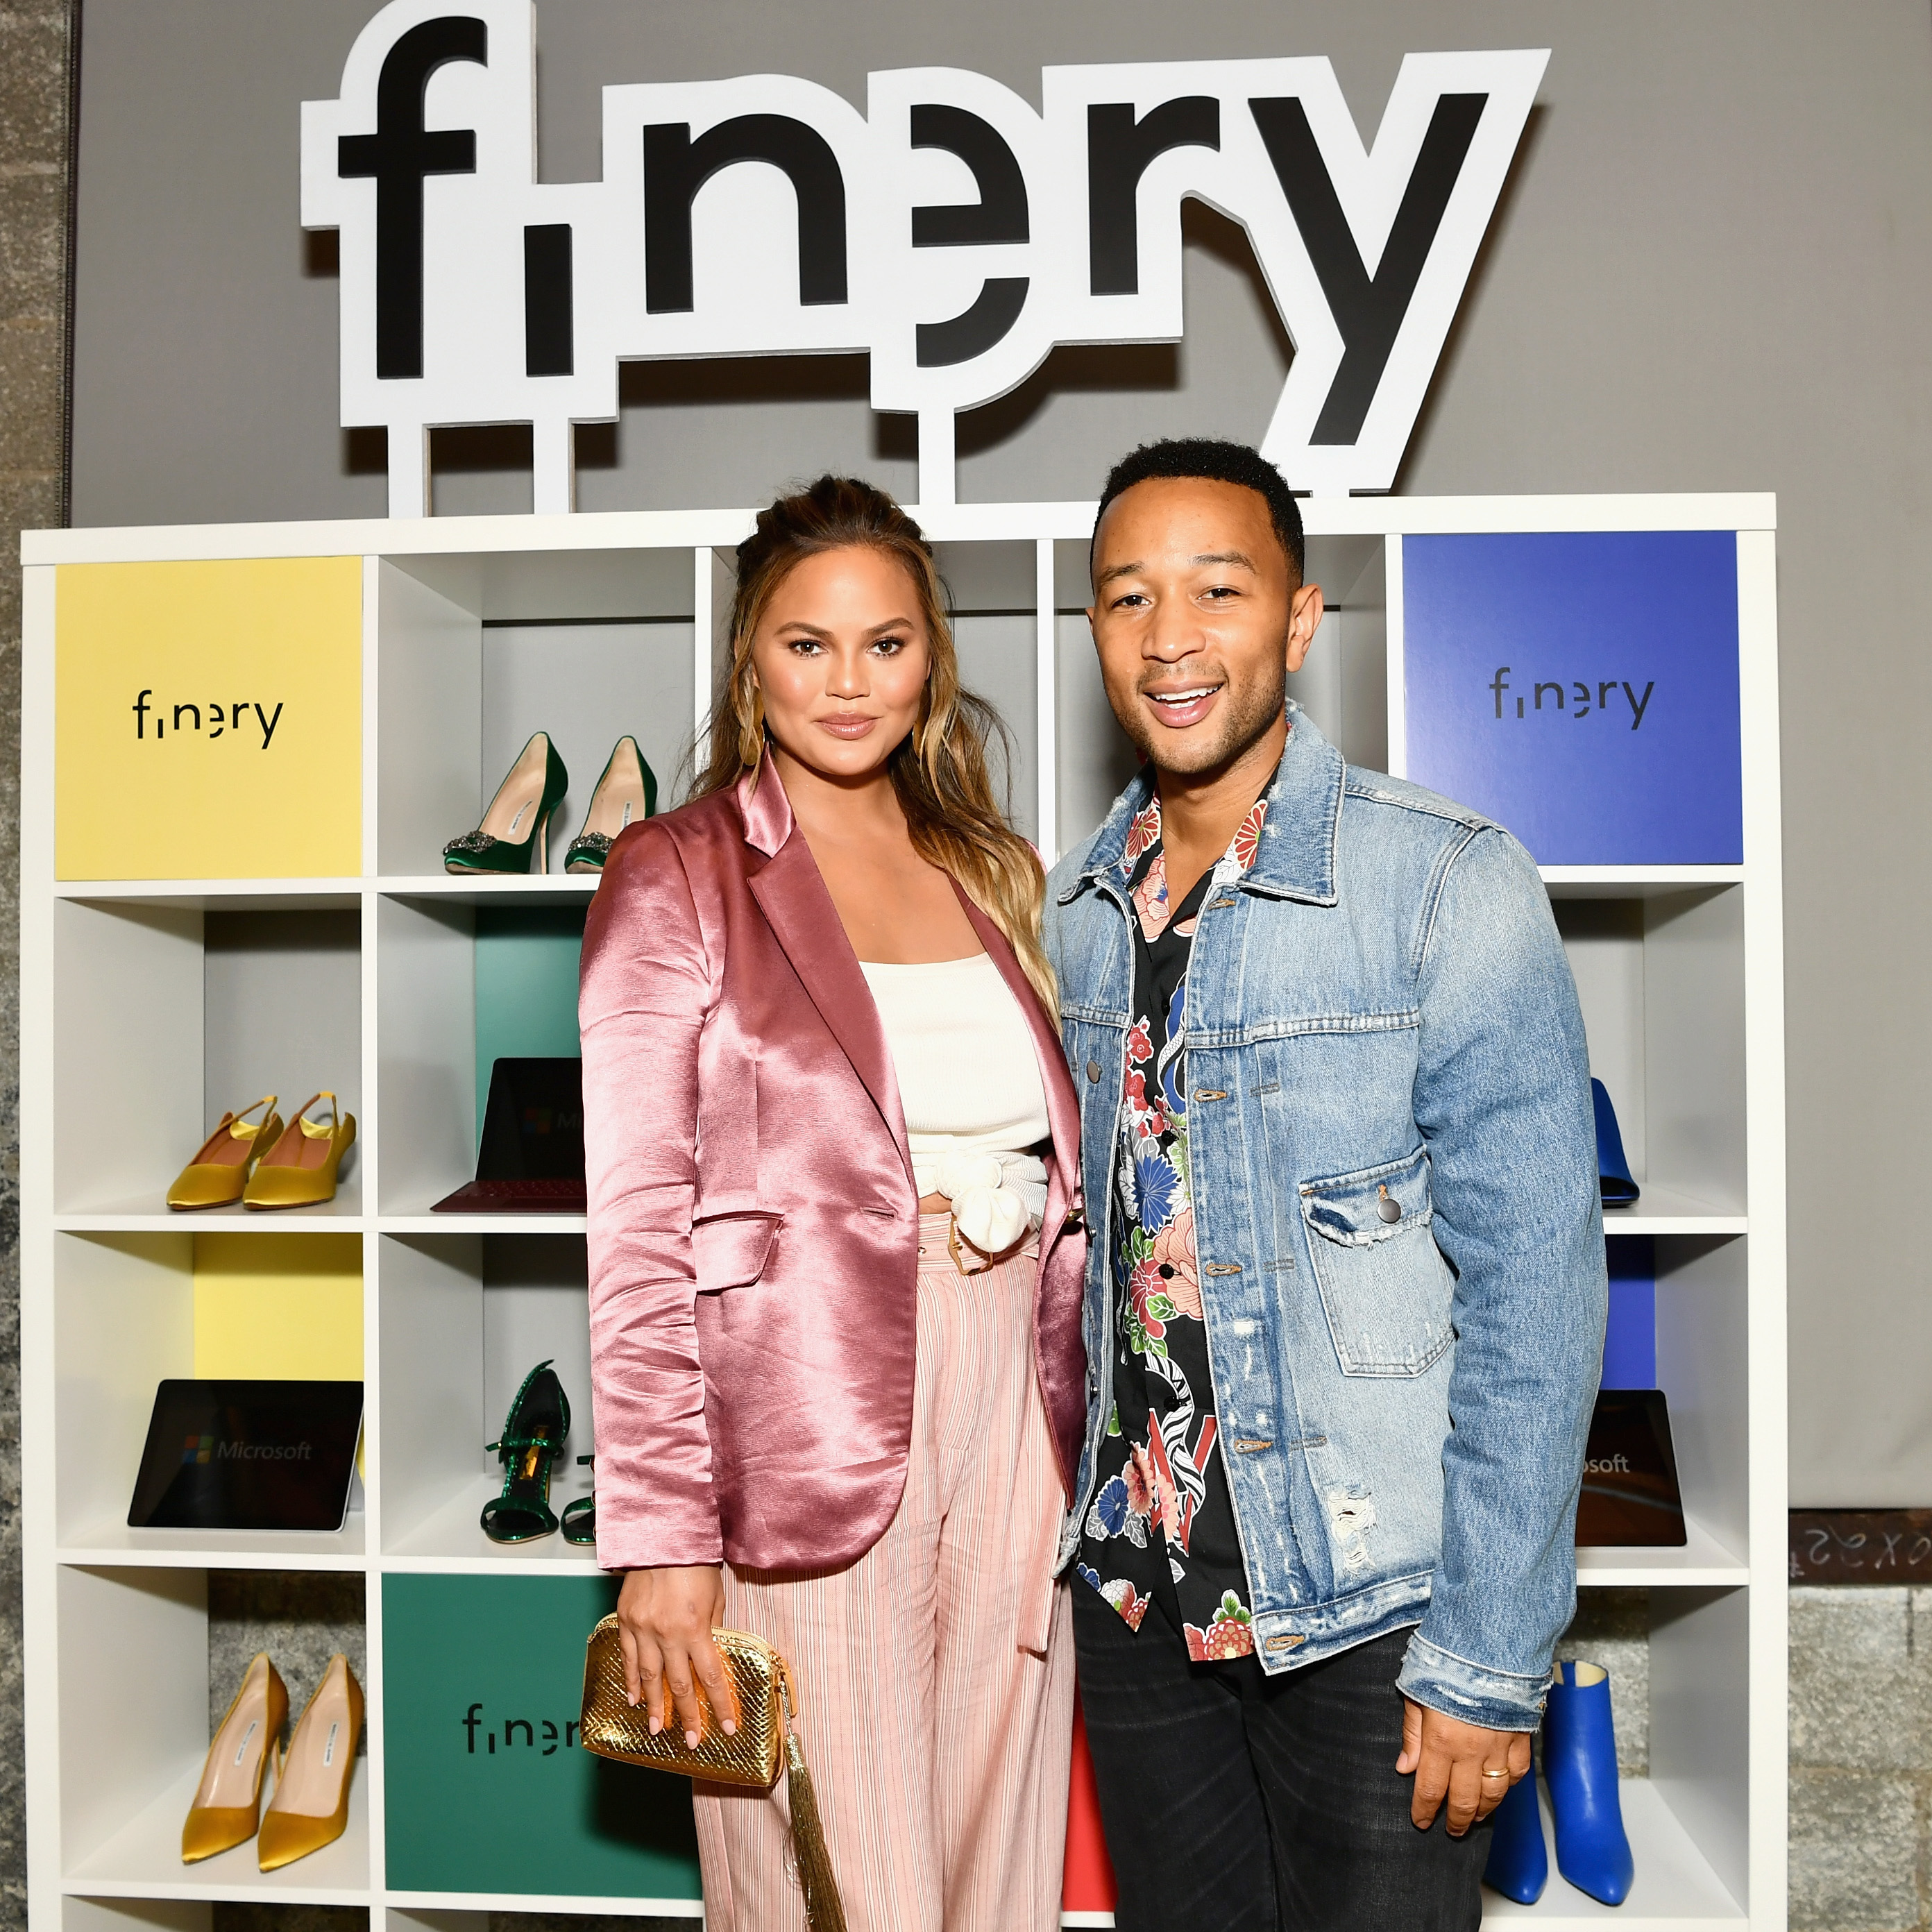 Chrissy Teigen and John Legend attend the Finery App launch party hosted by Brooklyn Decker at Microsoft Lounge in Culver City, California, on July 11, 2018.